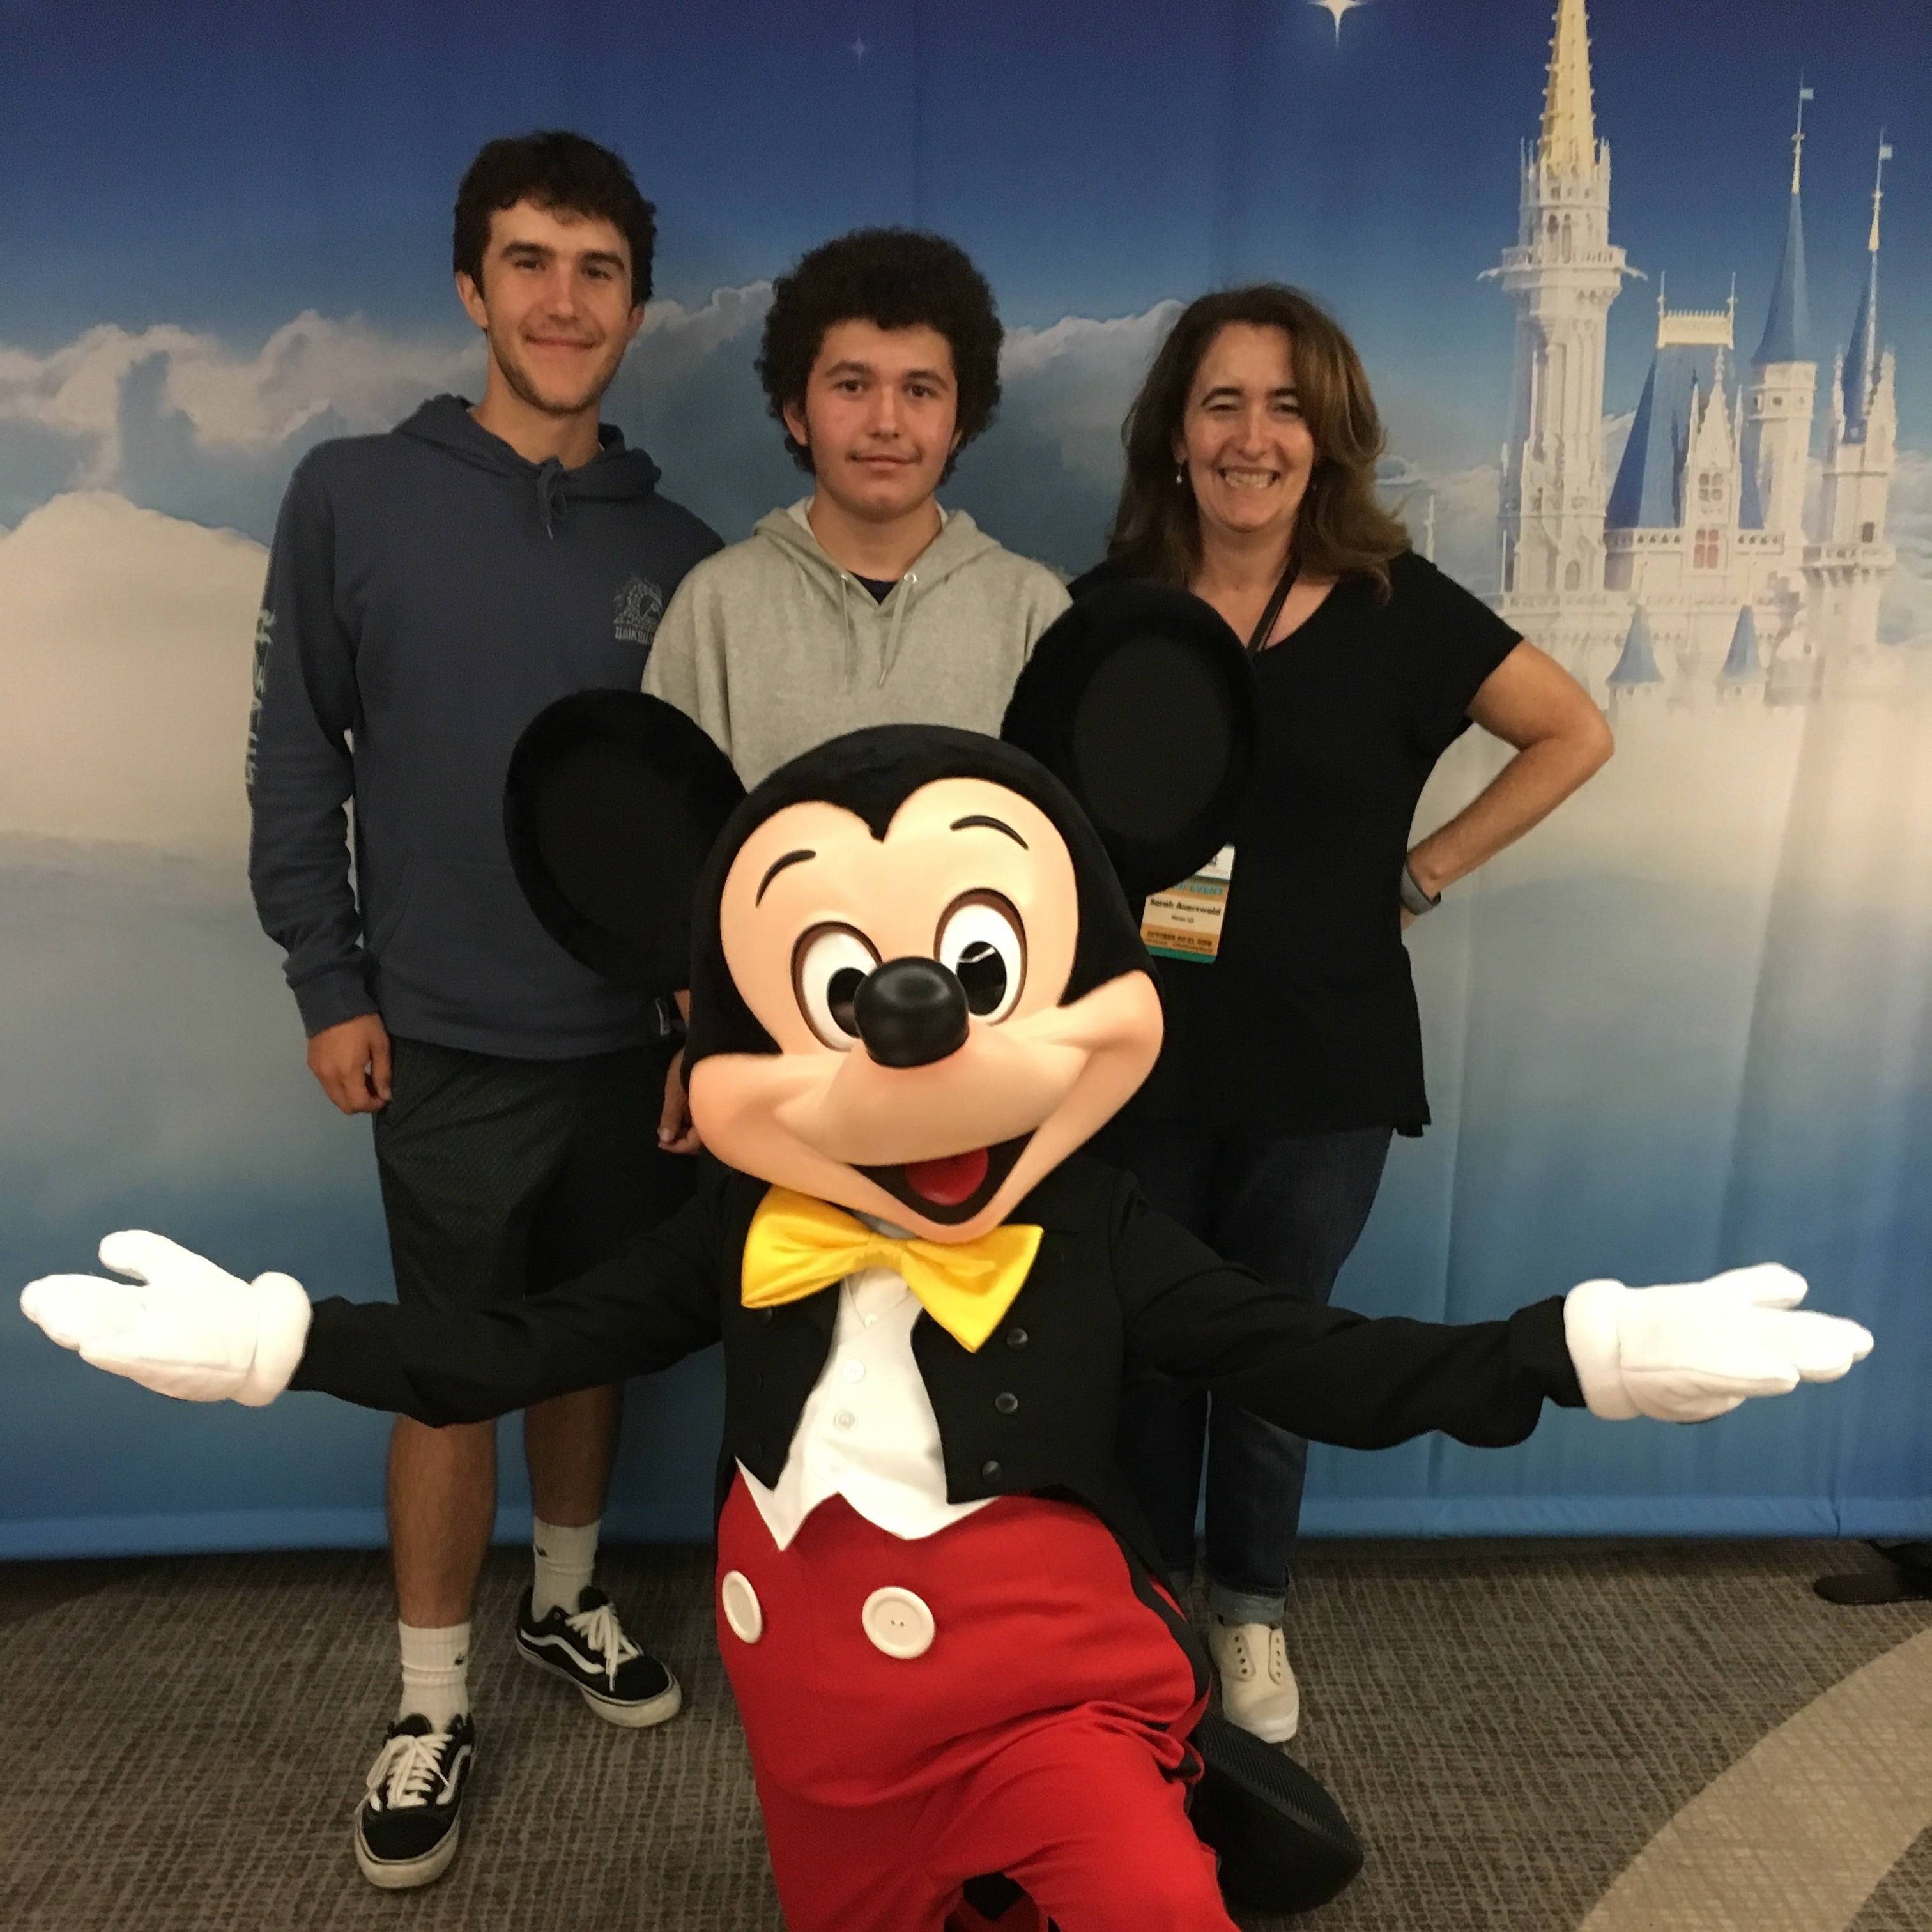 sarah-and-her-kids-with-mickey-mouse